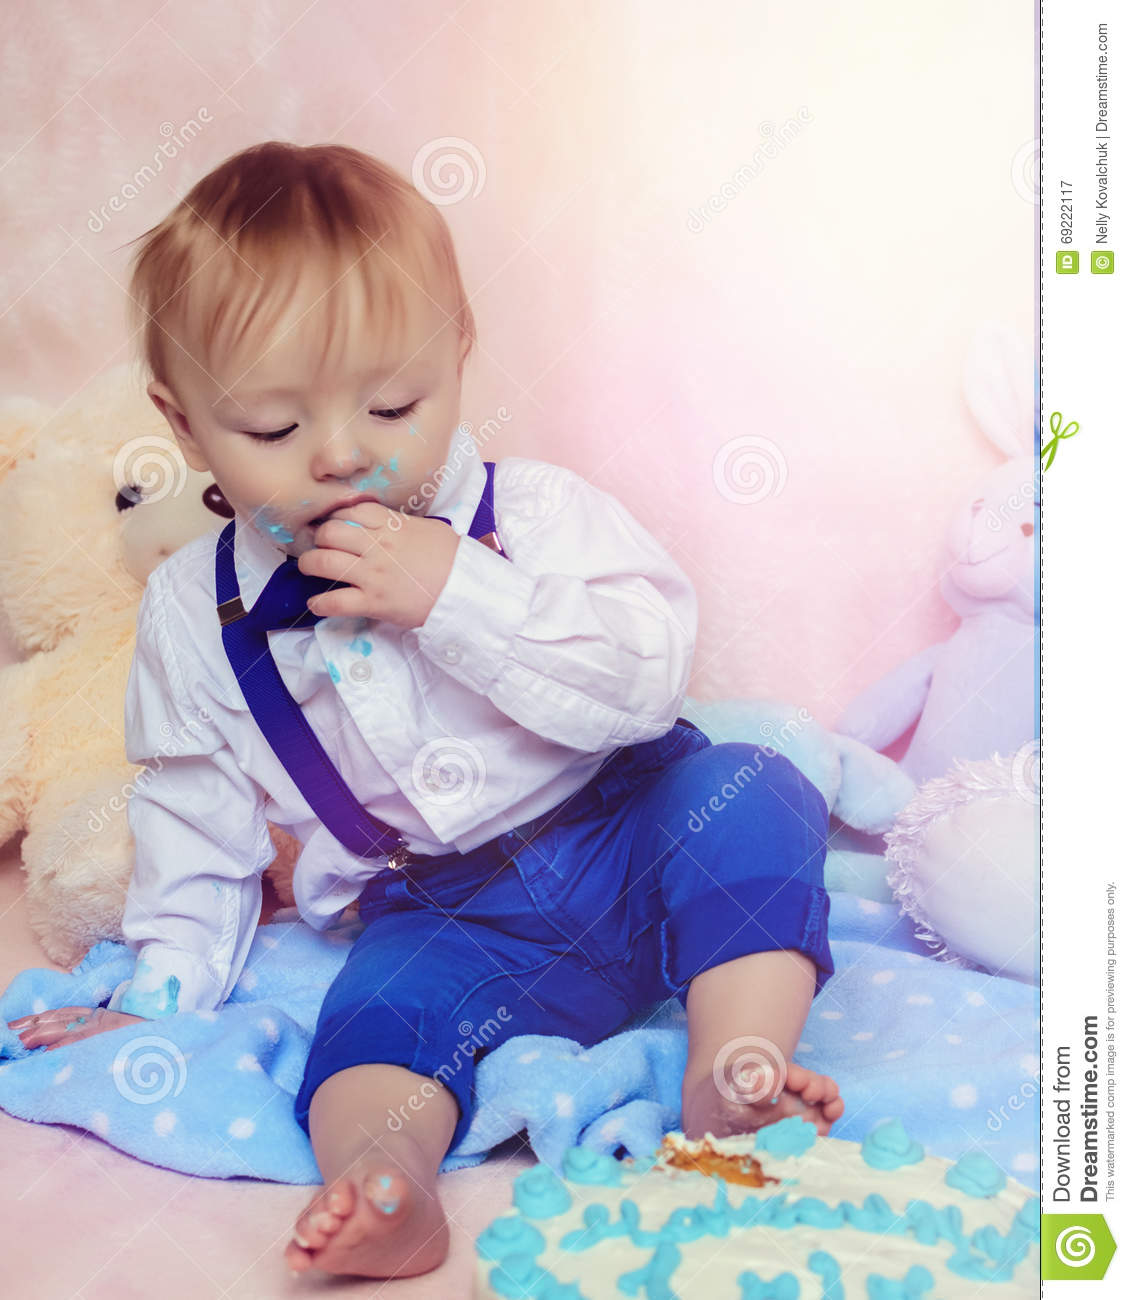 Baby Eating Cake Clipart : Happy Baby Boy Eating Cake For His First Birthday Party ...